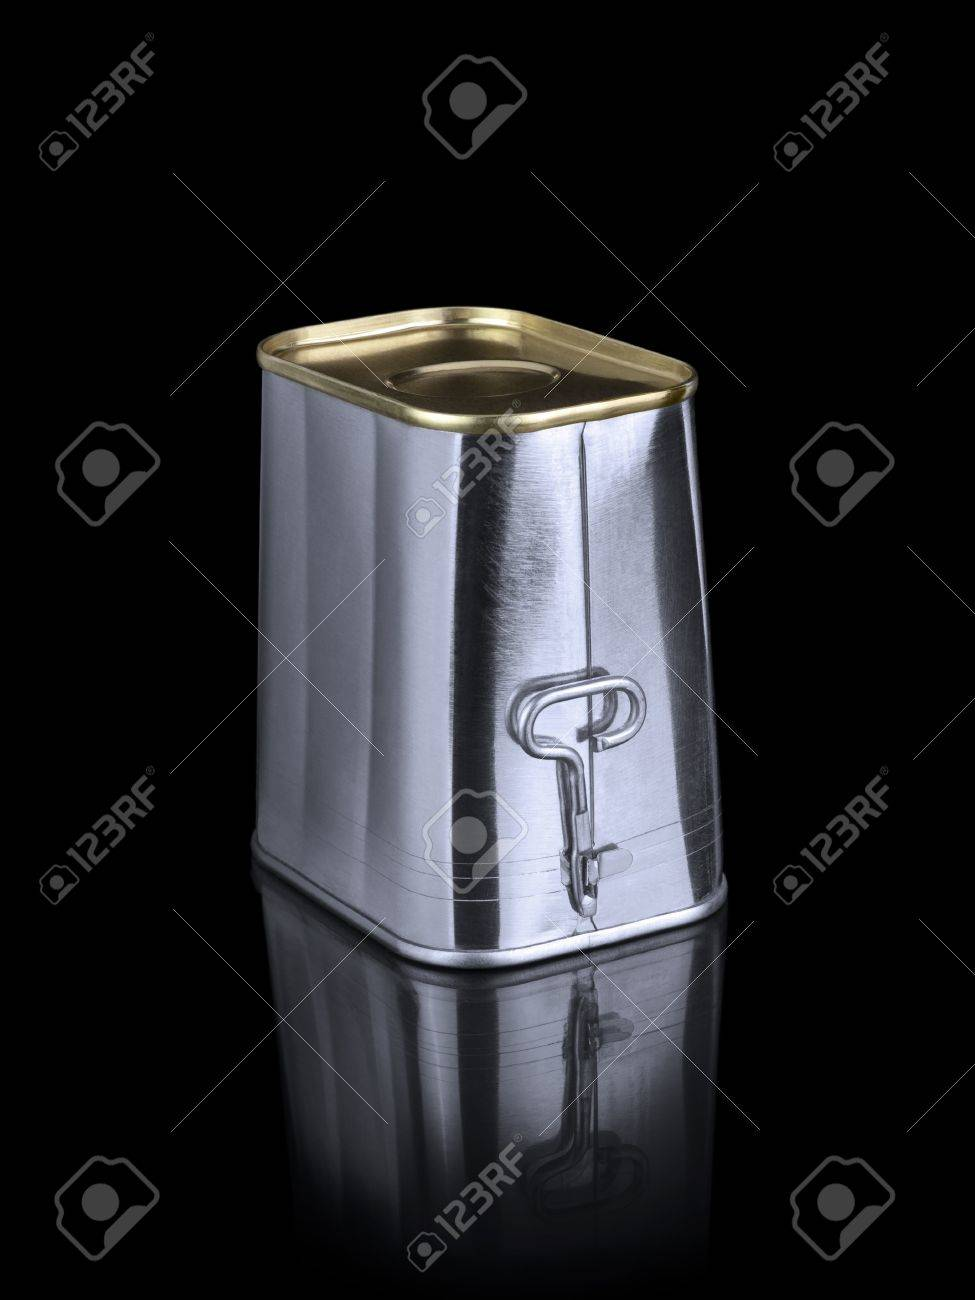 A can of spam holds its opener. Isolated on black. Stock Photo - 10269699